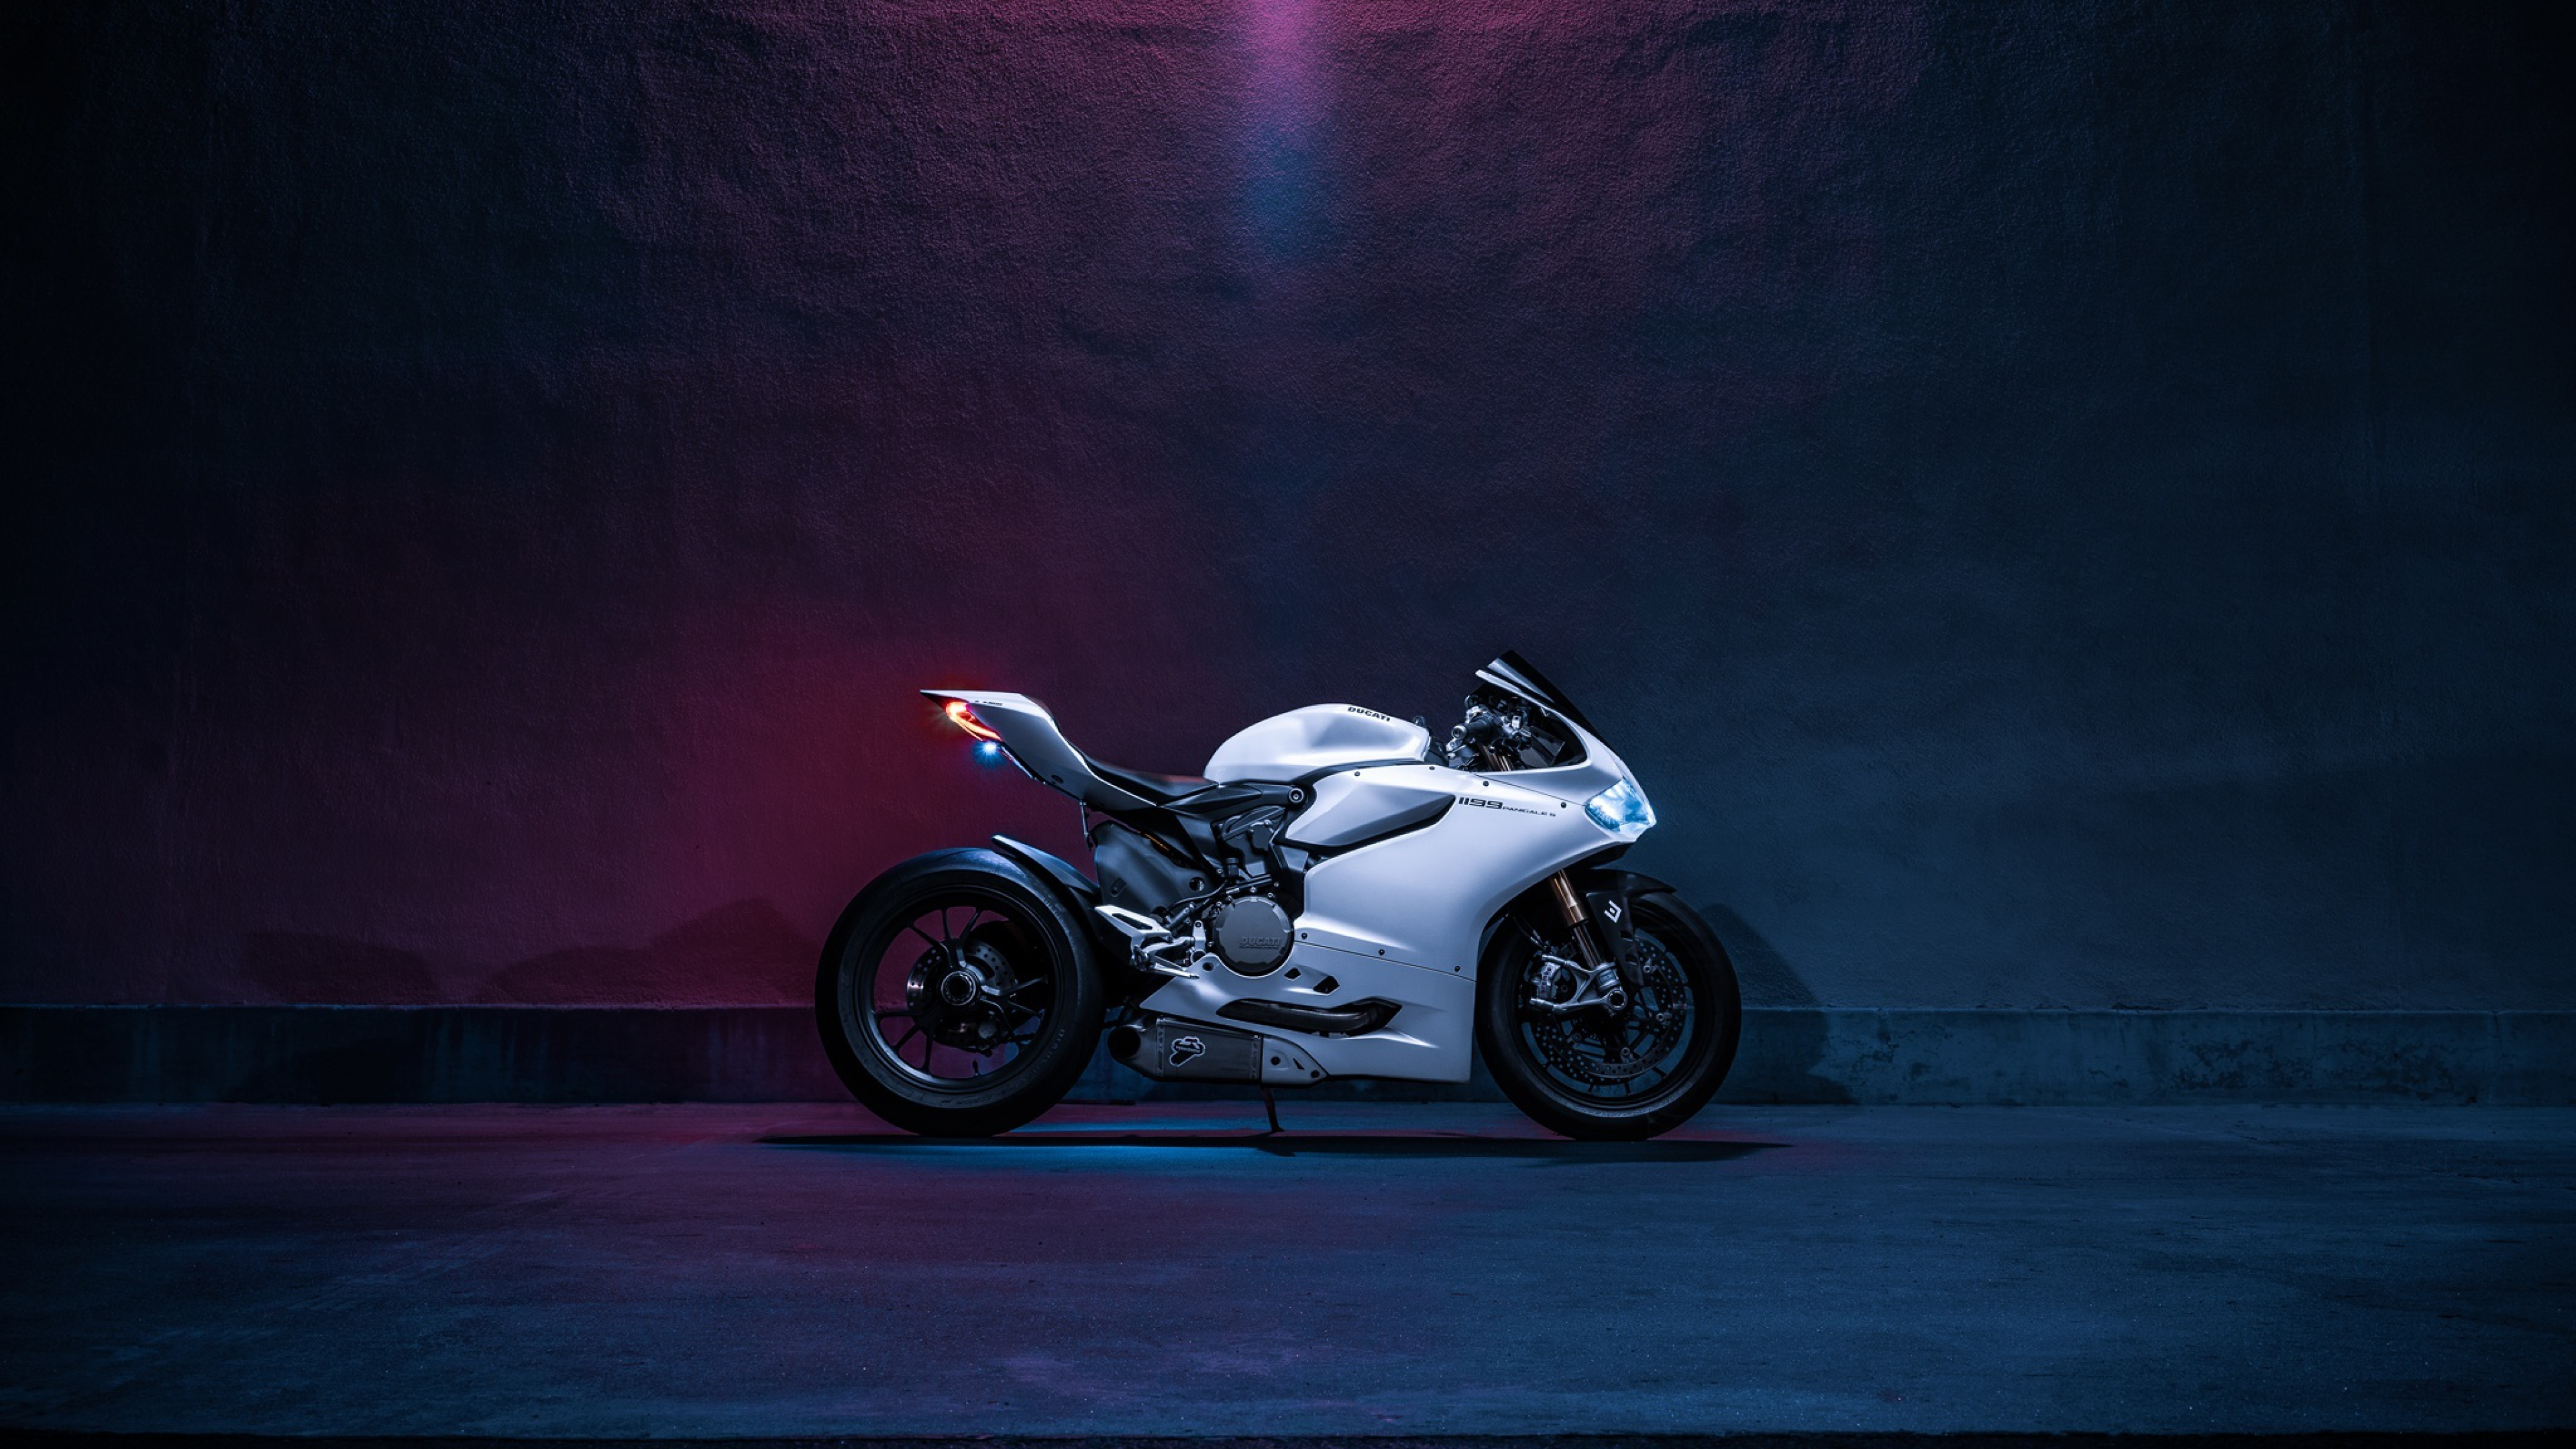 Ducati Panigale 1199s, HD Bikes, 4k Wallpapers, Images, Backgrounds